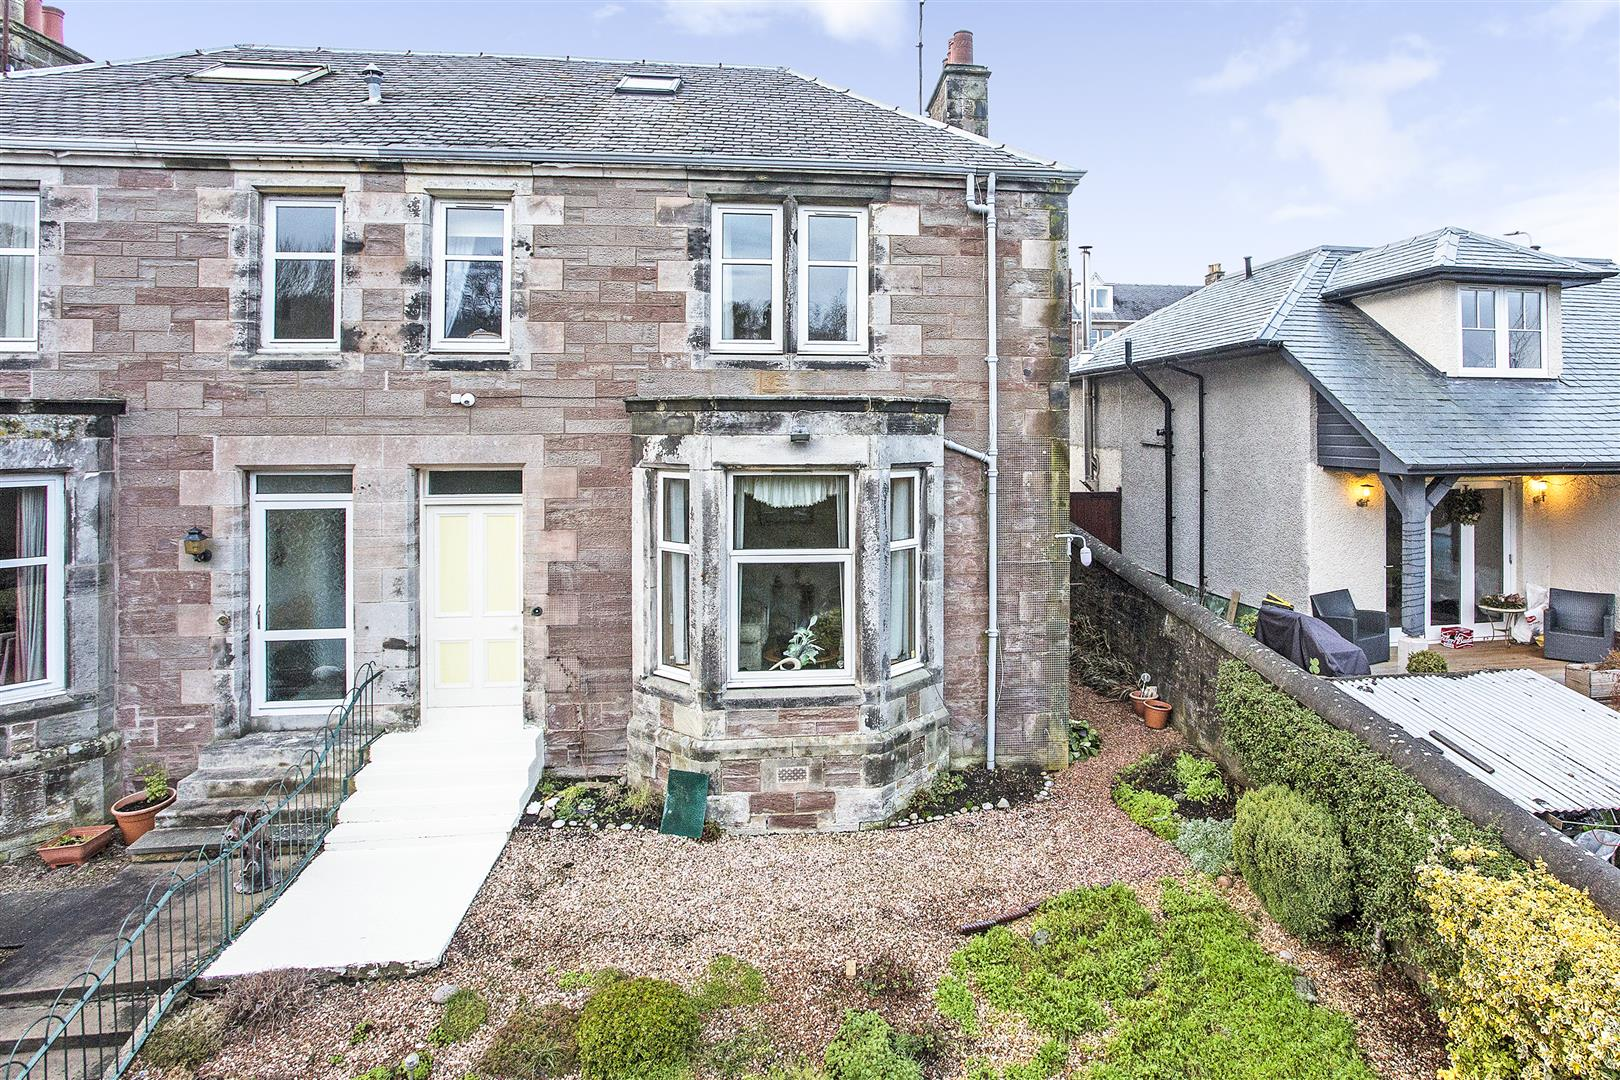 180, Glasgow Road, Perth, Perthshire, PH2 0LZ, UK